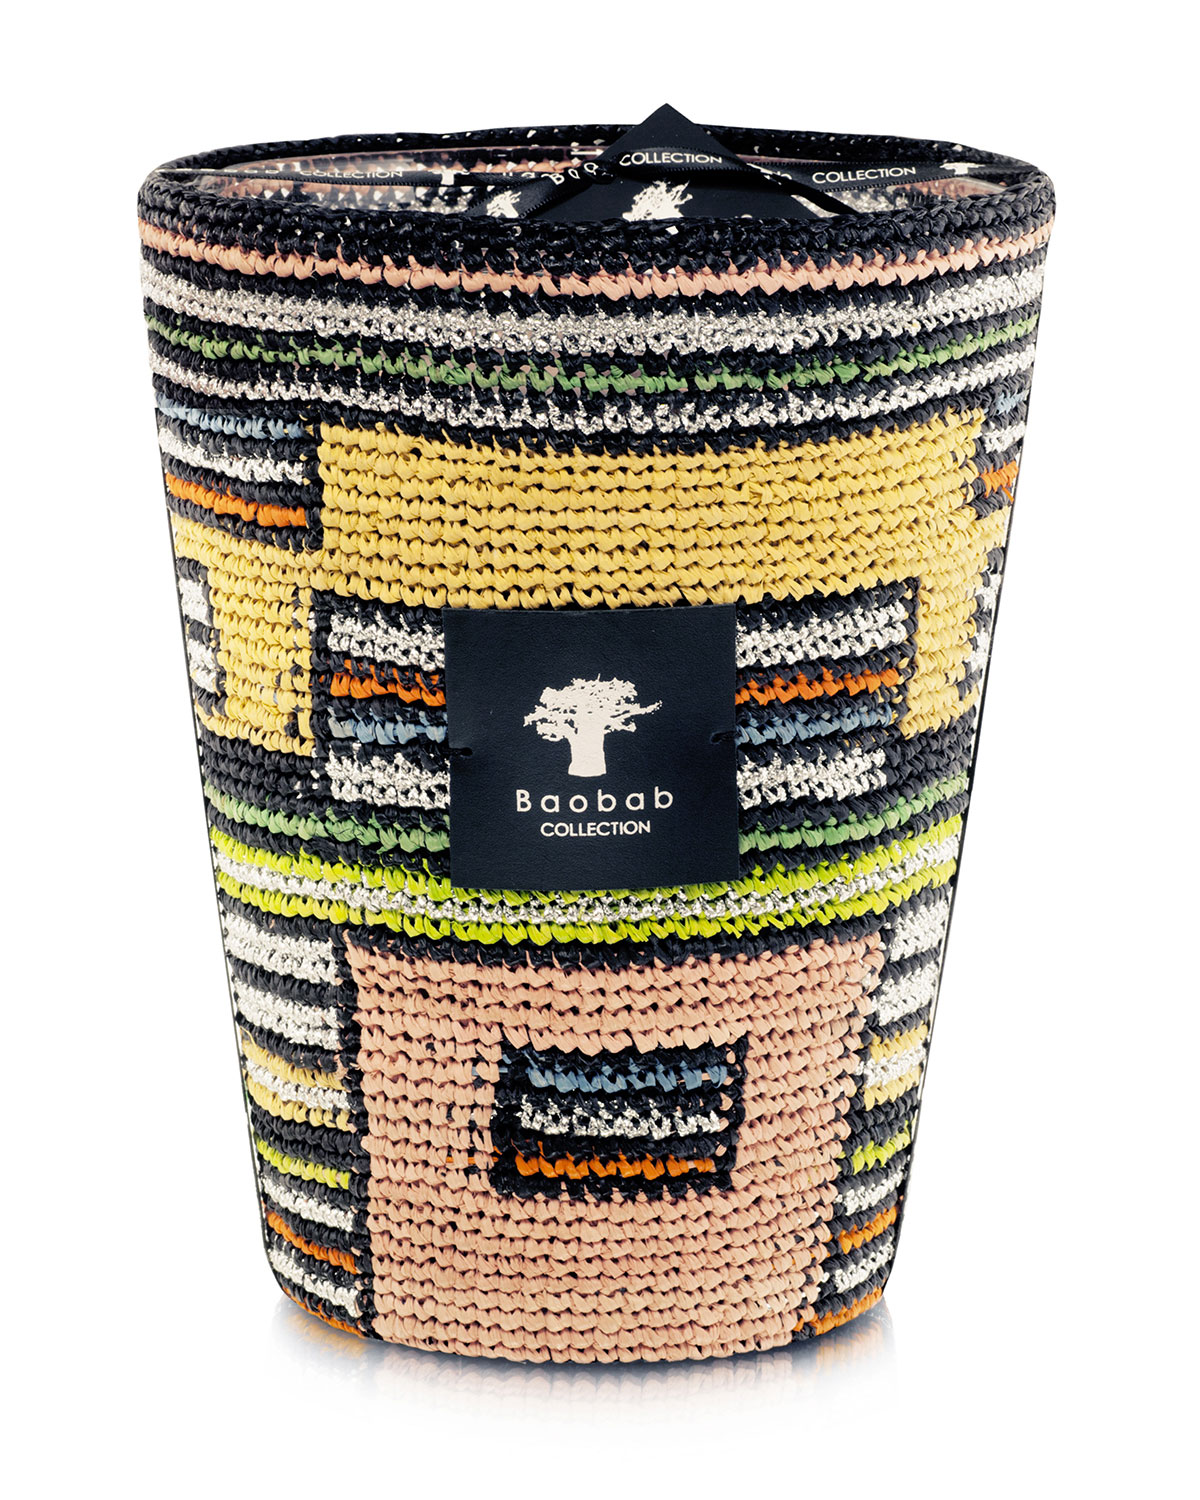 Baobab Collection MAX 24 MODERNISTA RAFFIA MIZO CANDLE